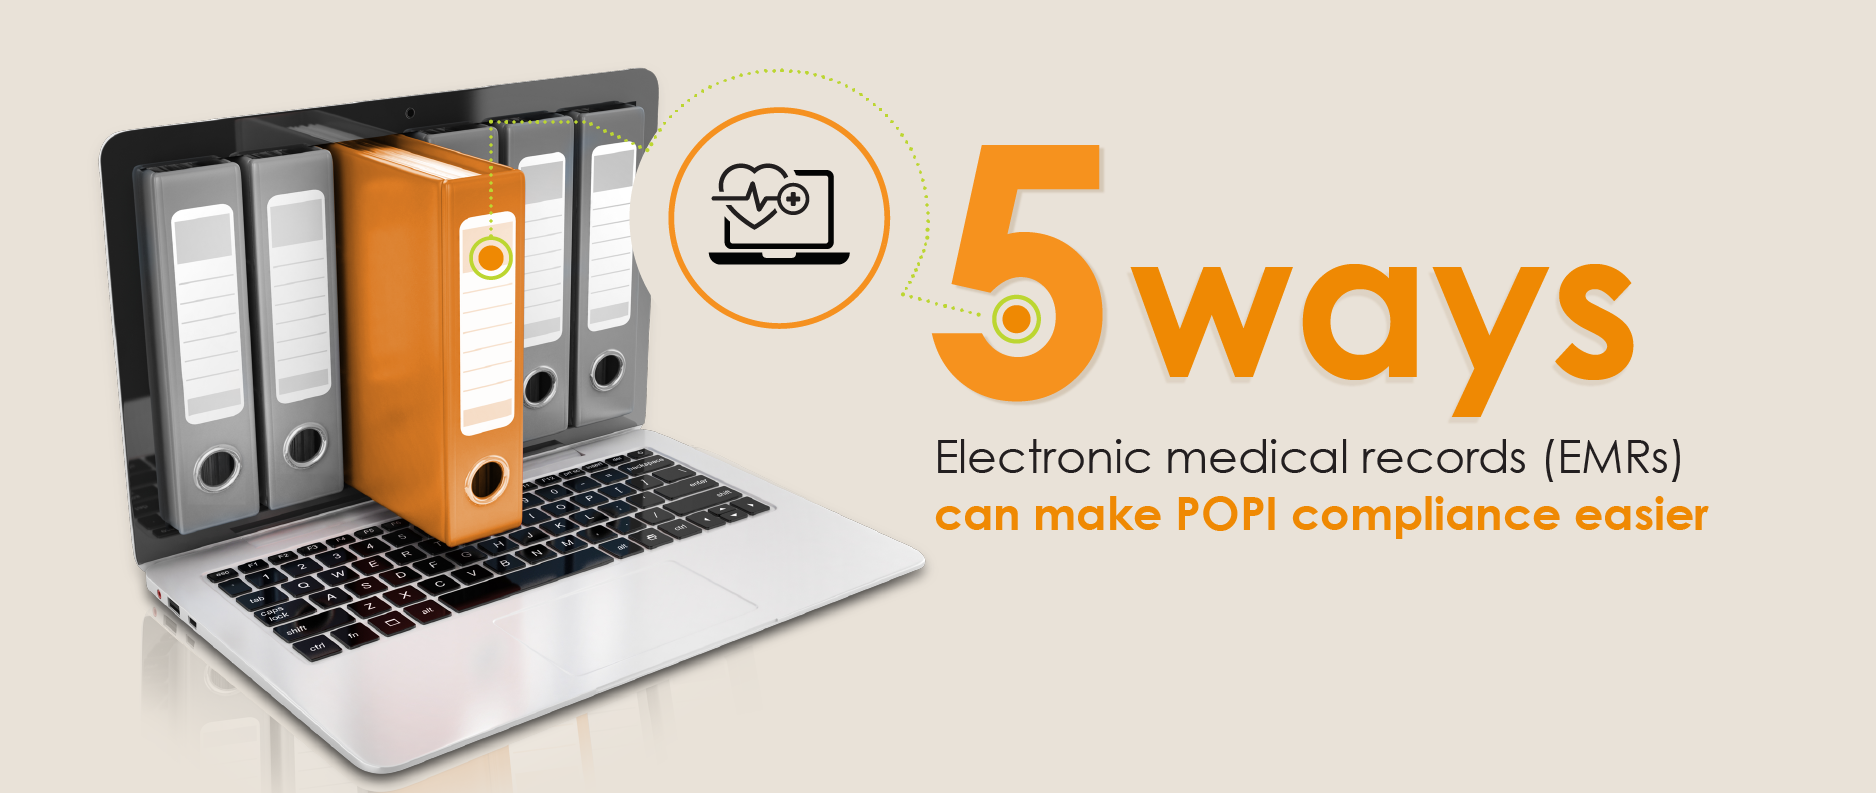 5 Ways to make POPI compliance easier with Electronic Medical Records (EMRs)